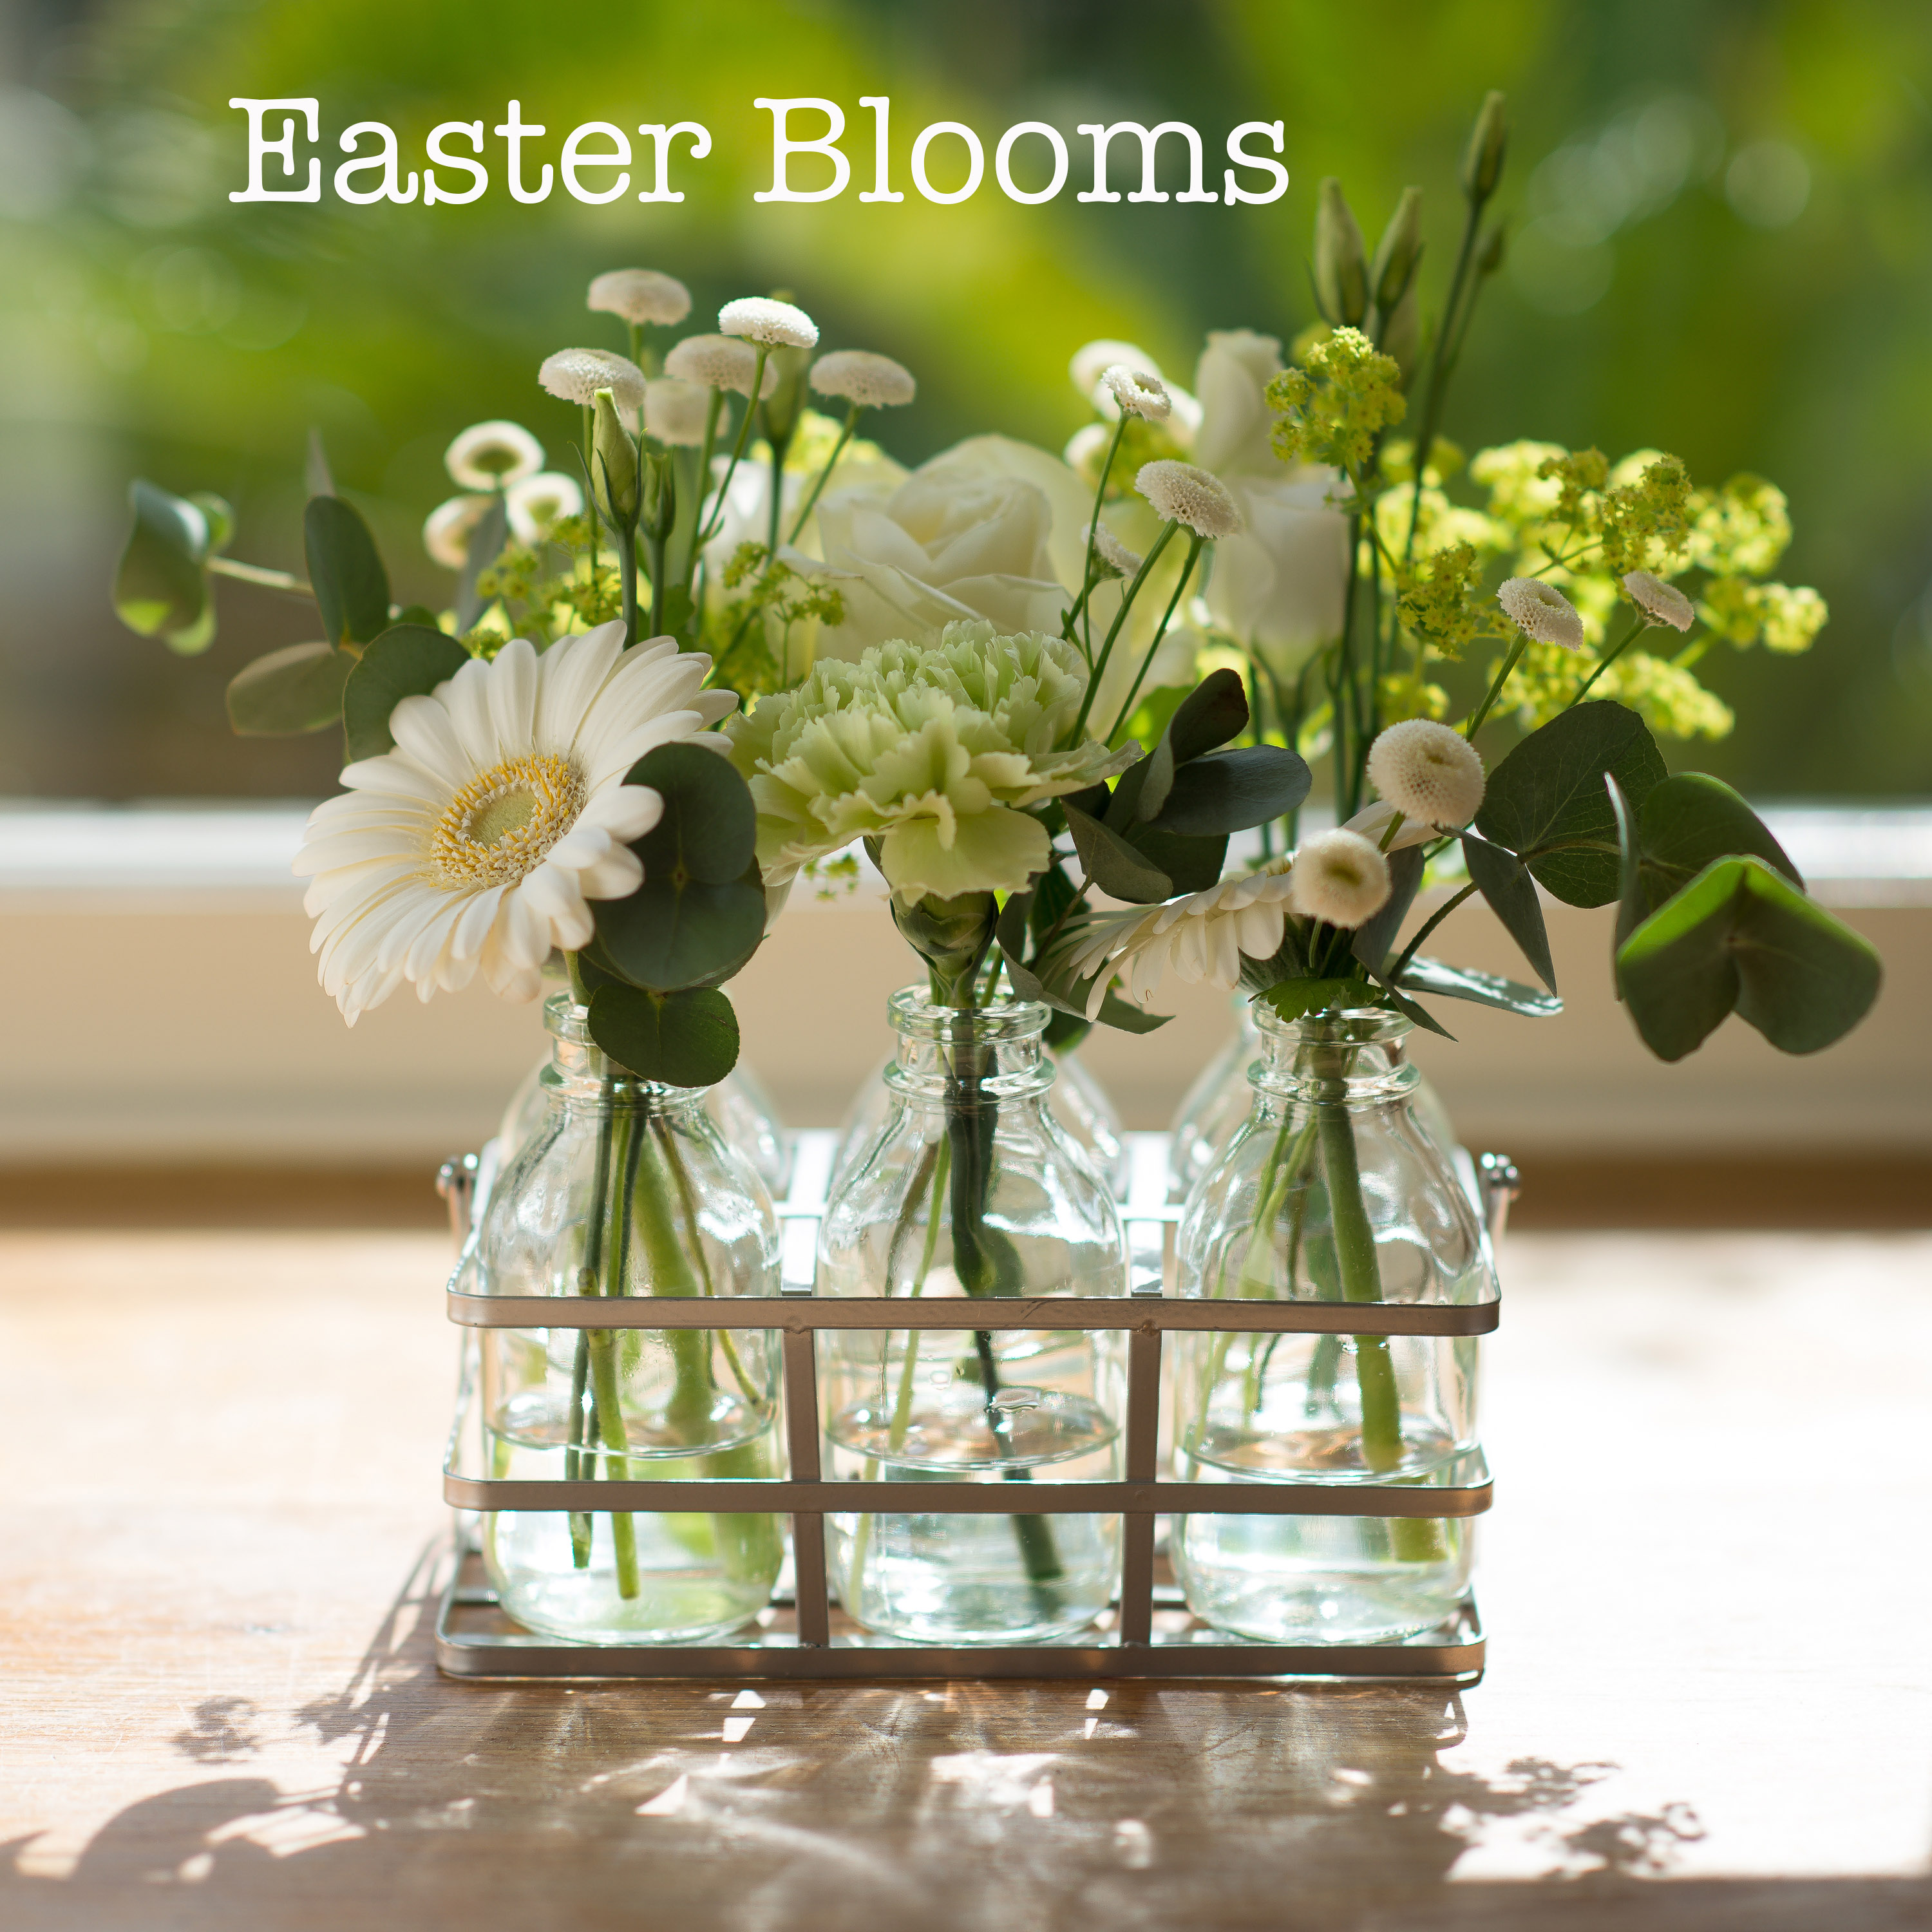 Easter Blooms